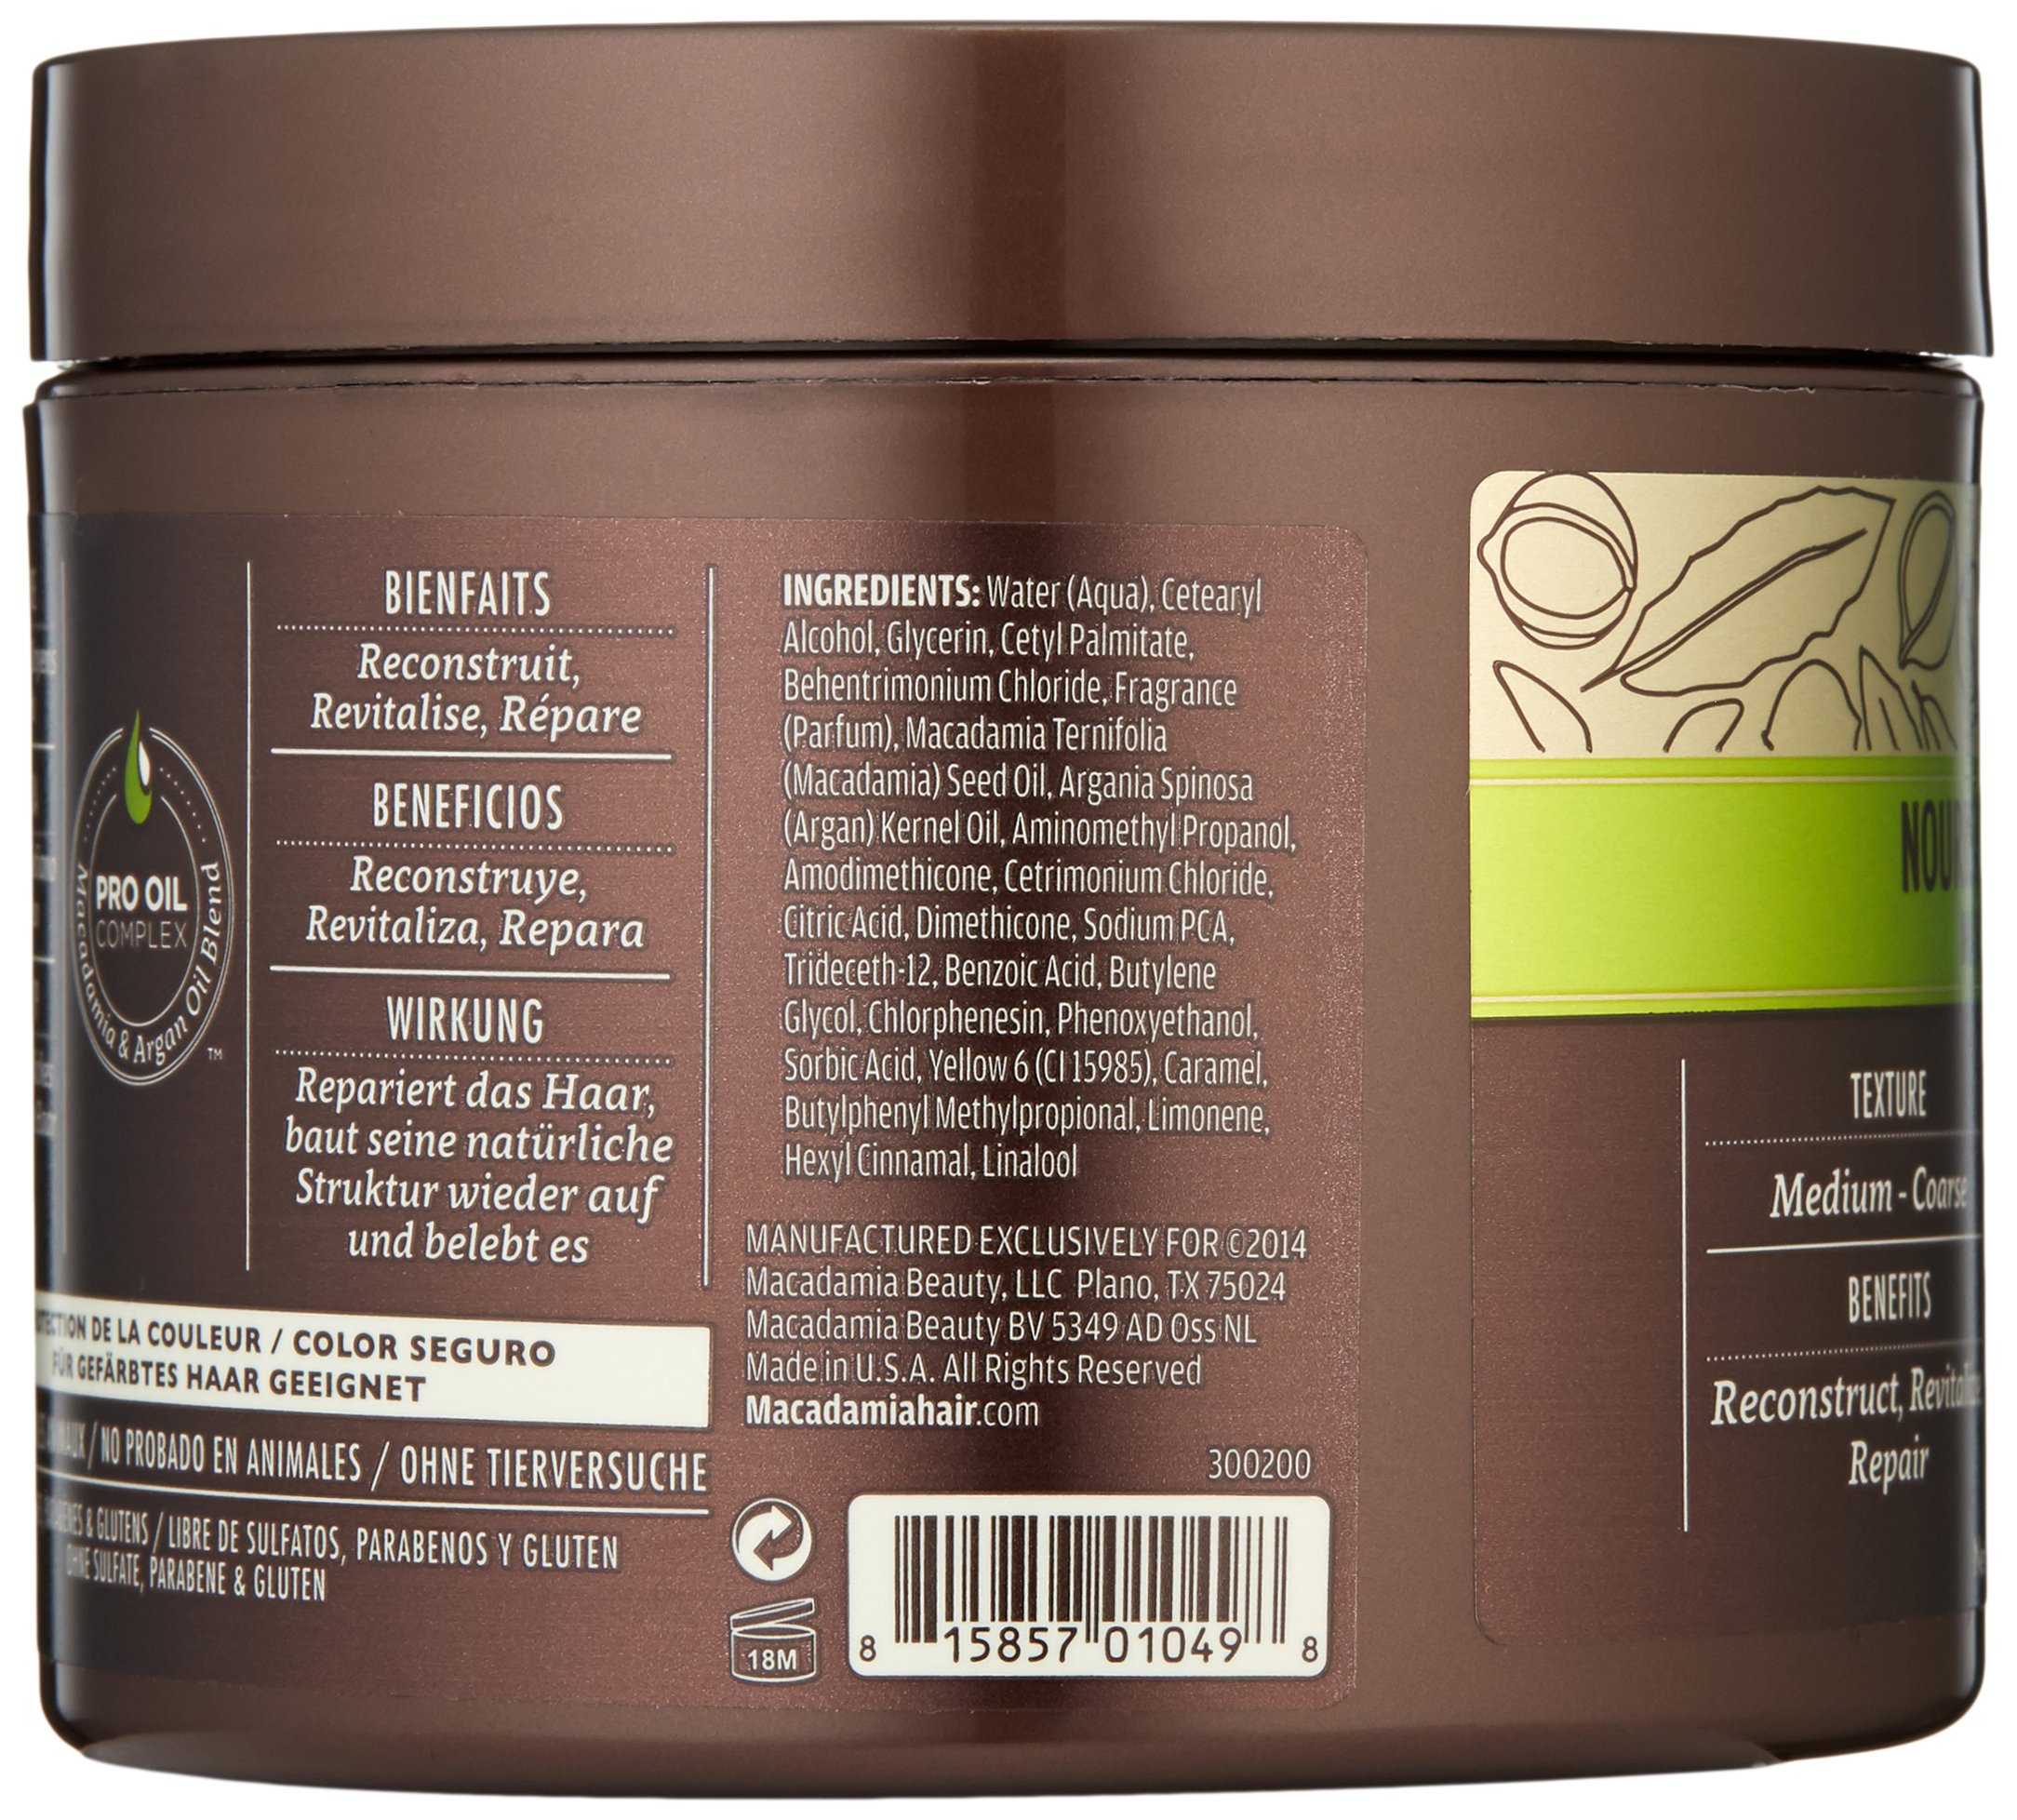 Macadamia Professional Nourishing Moisture Masque - 8oz. - Medium to Coarse Hair Textures - Ultimate Hydrating Treatment - With Argan Oil - Sulfate, Gluten & Paraben Free, Safe for Color-Treated Hair